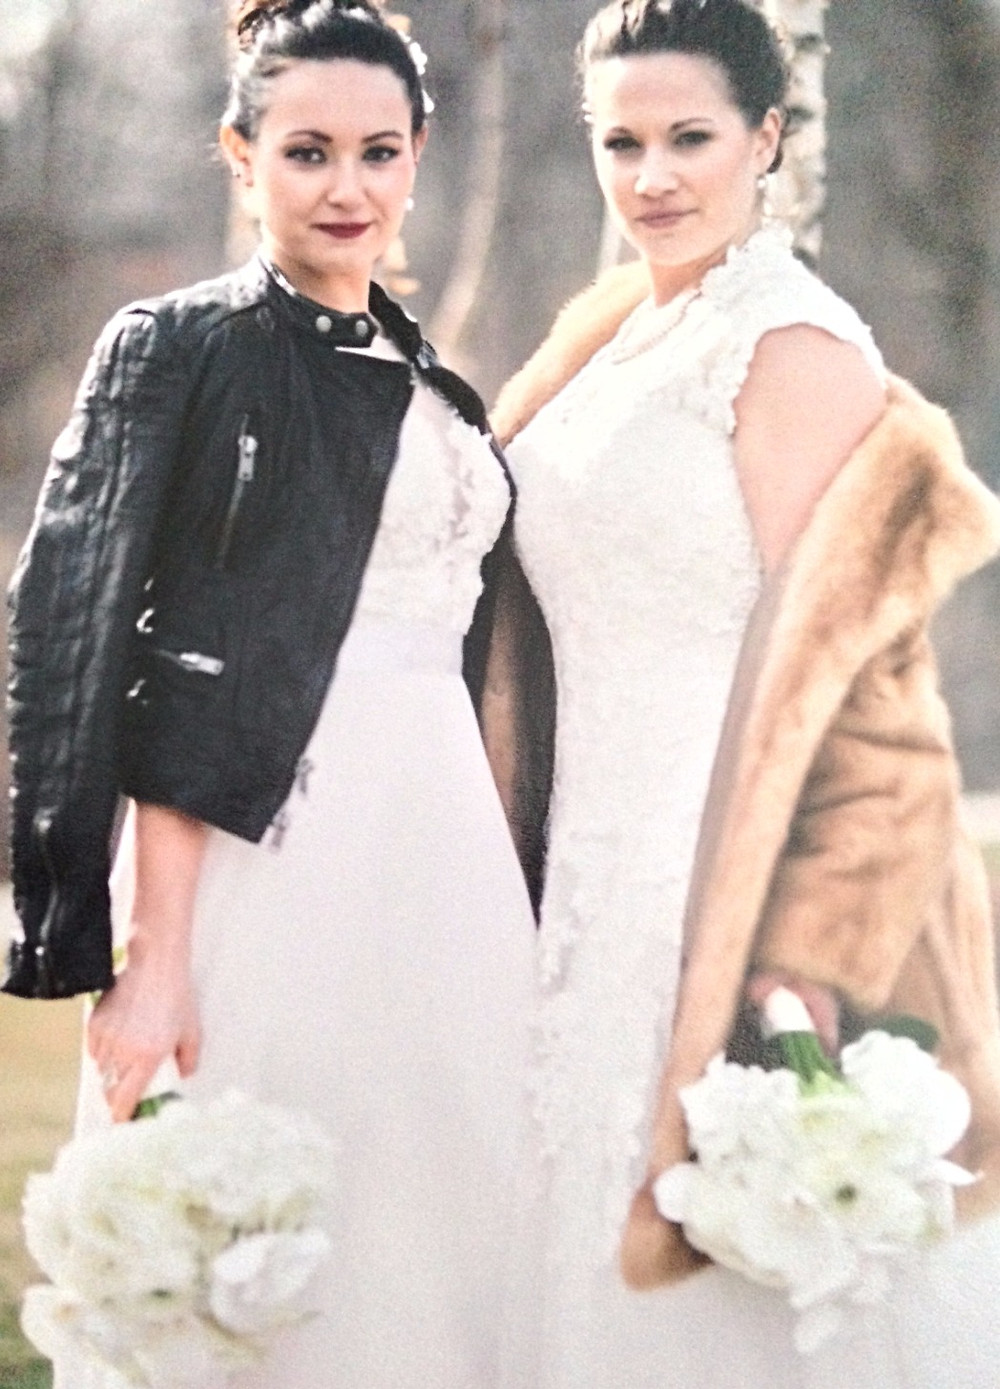 FIERCE! Shannon and Caitline Burke on their wedding day